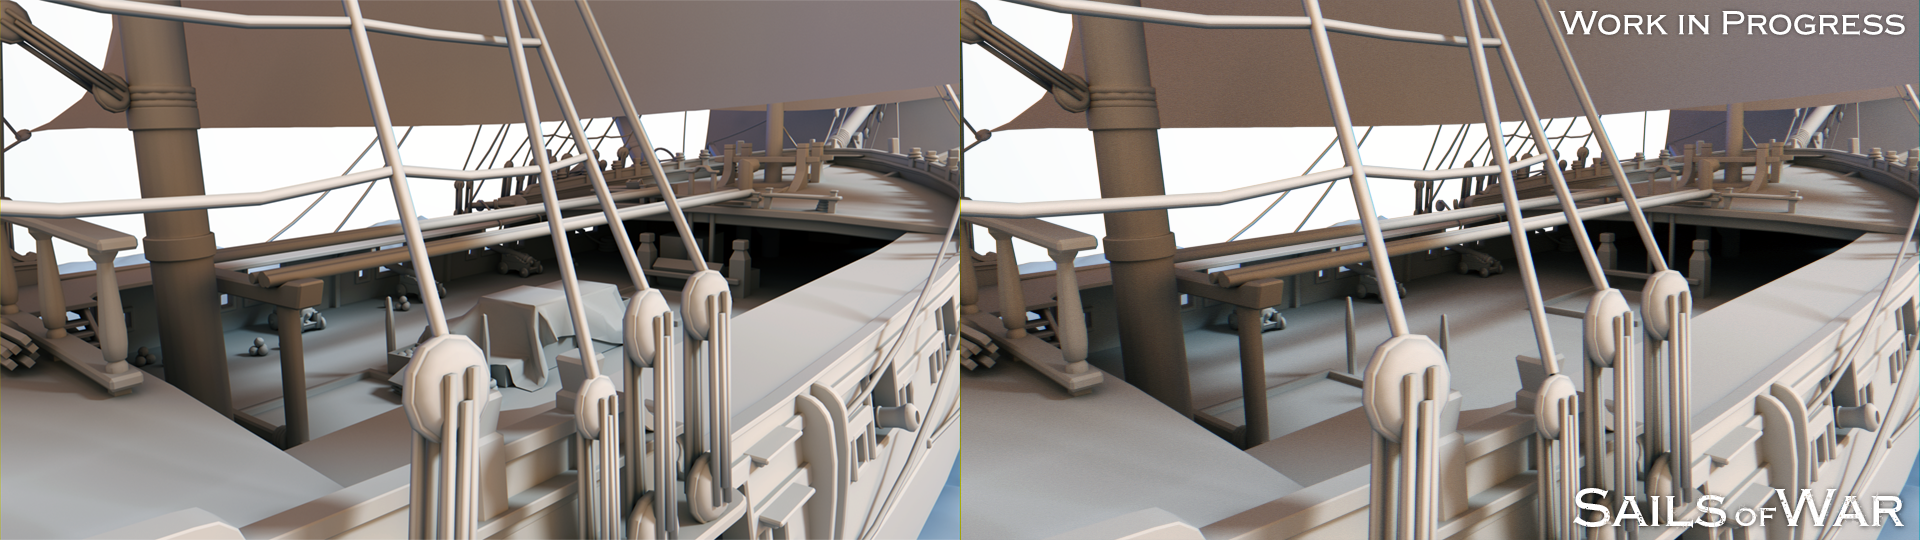 Sails of War - compare Detail